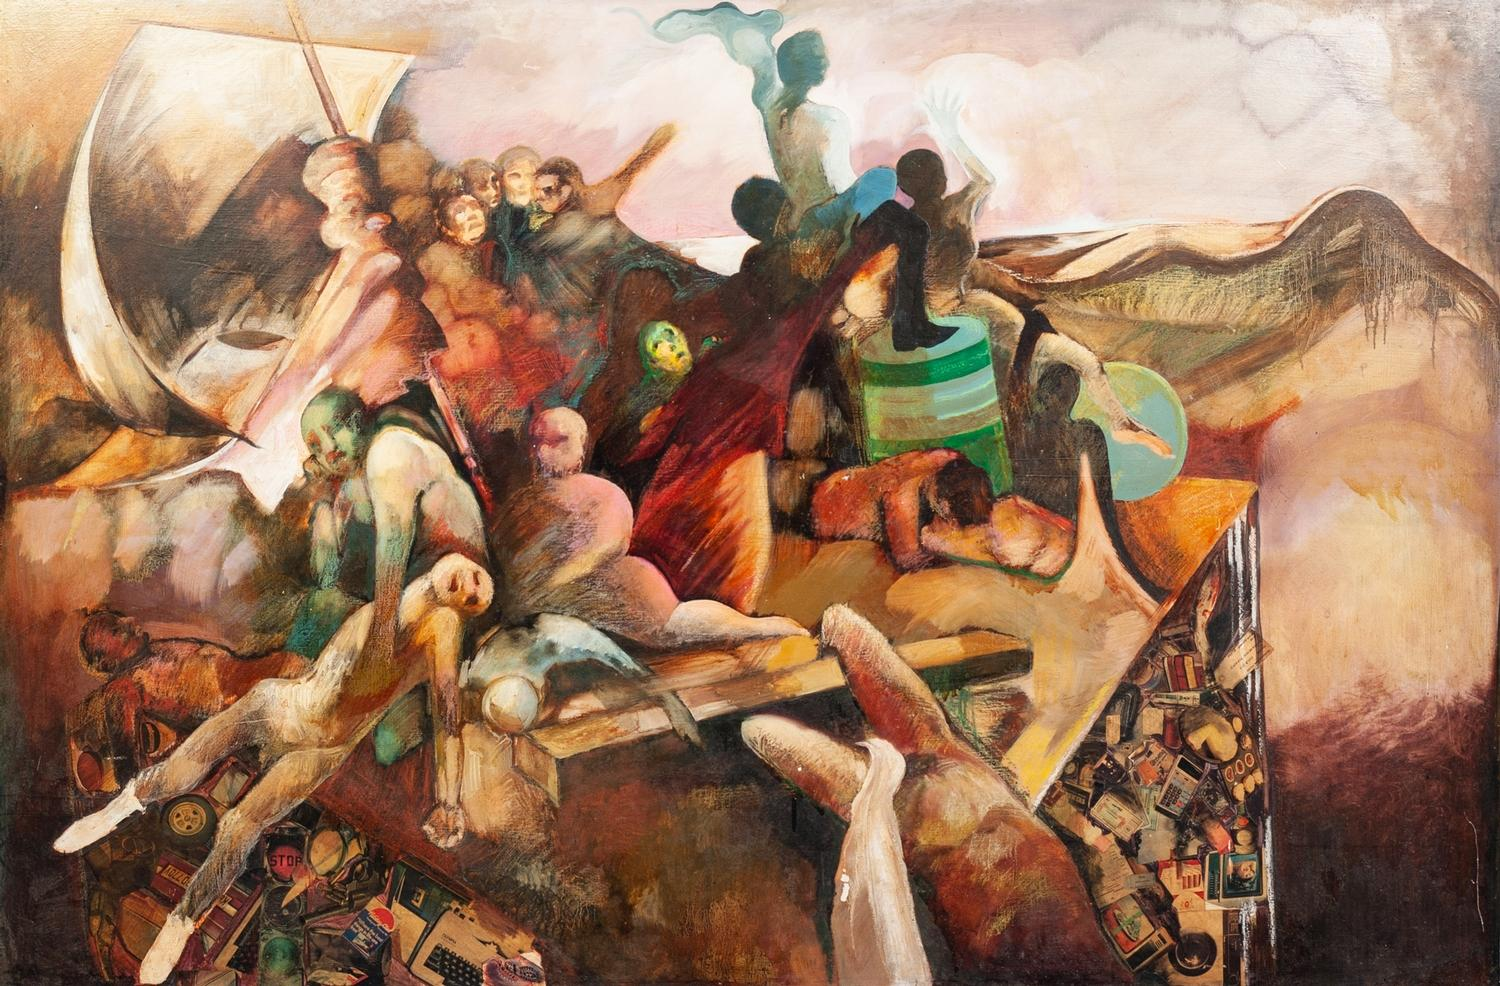 Lot 27 - JUNE BURNETT (1936-2010) MIXED MEDIA ON BOARD ?The Raft of Medusa? Signed and titled to label